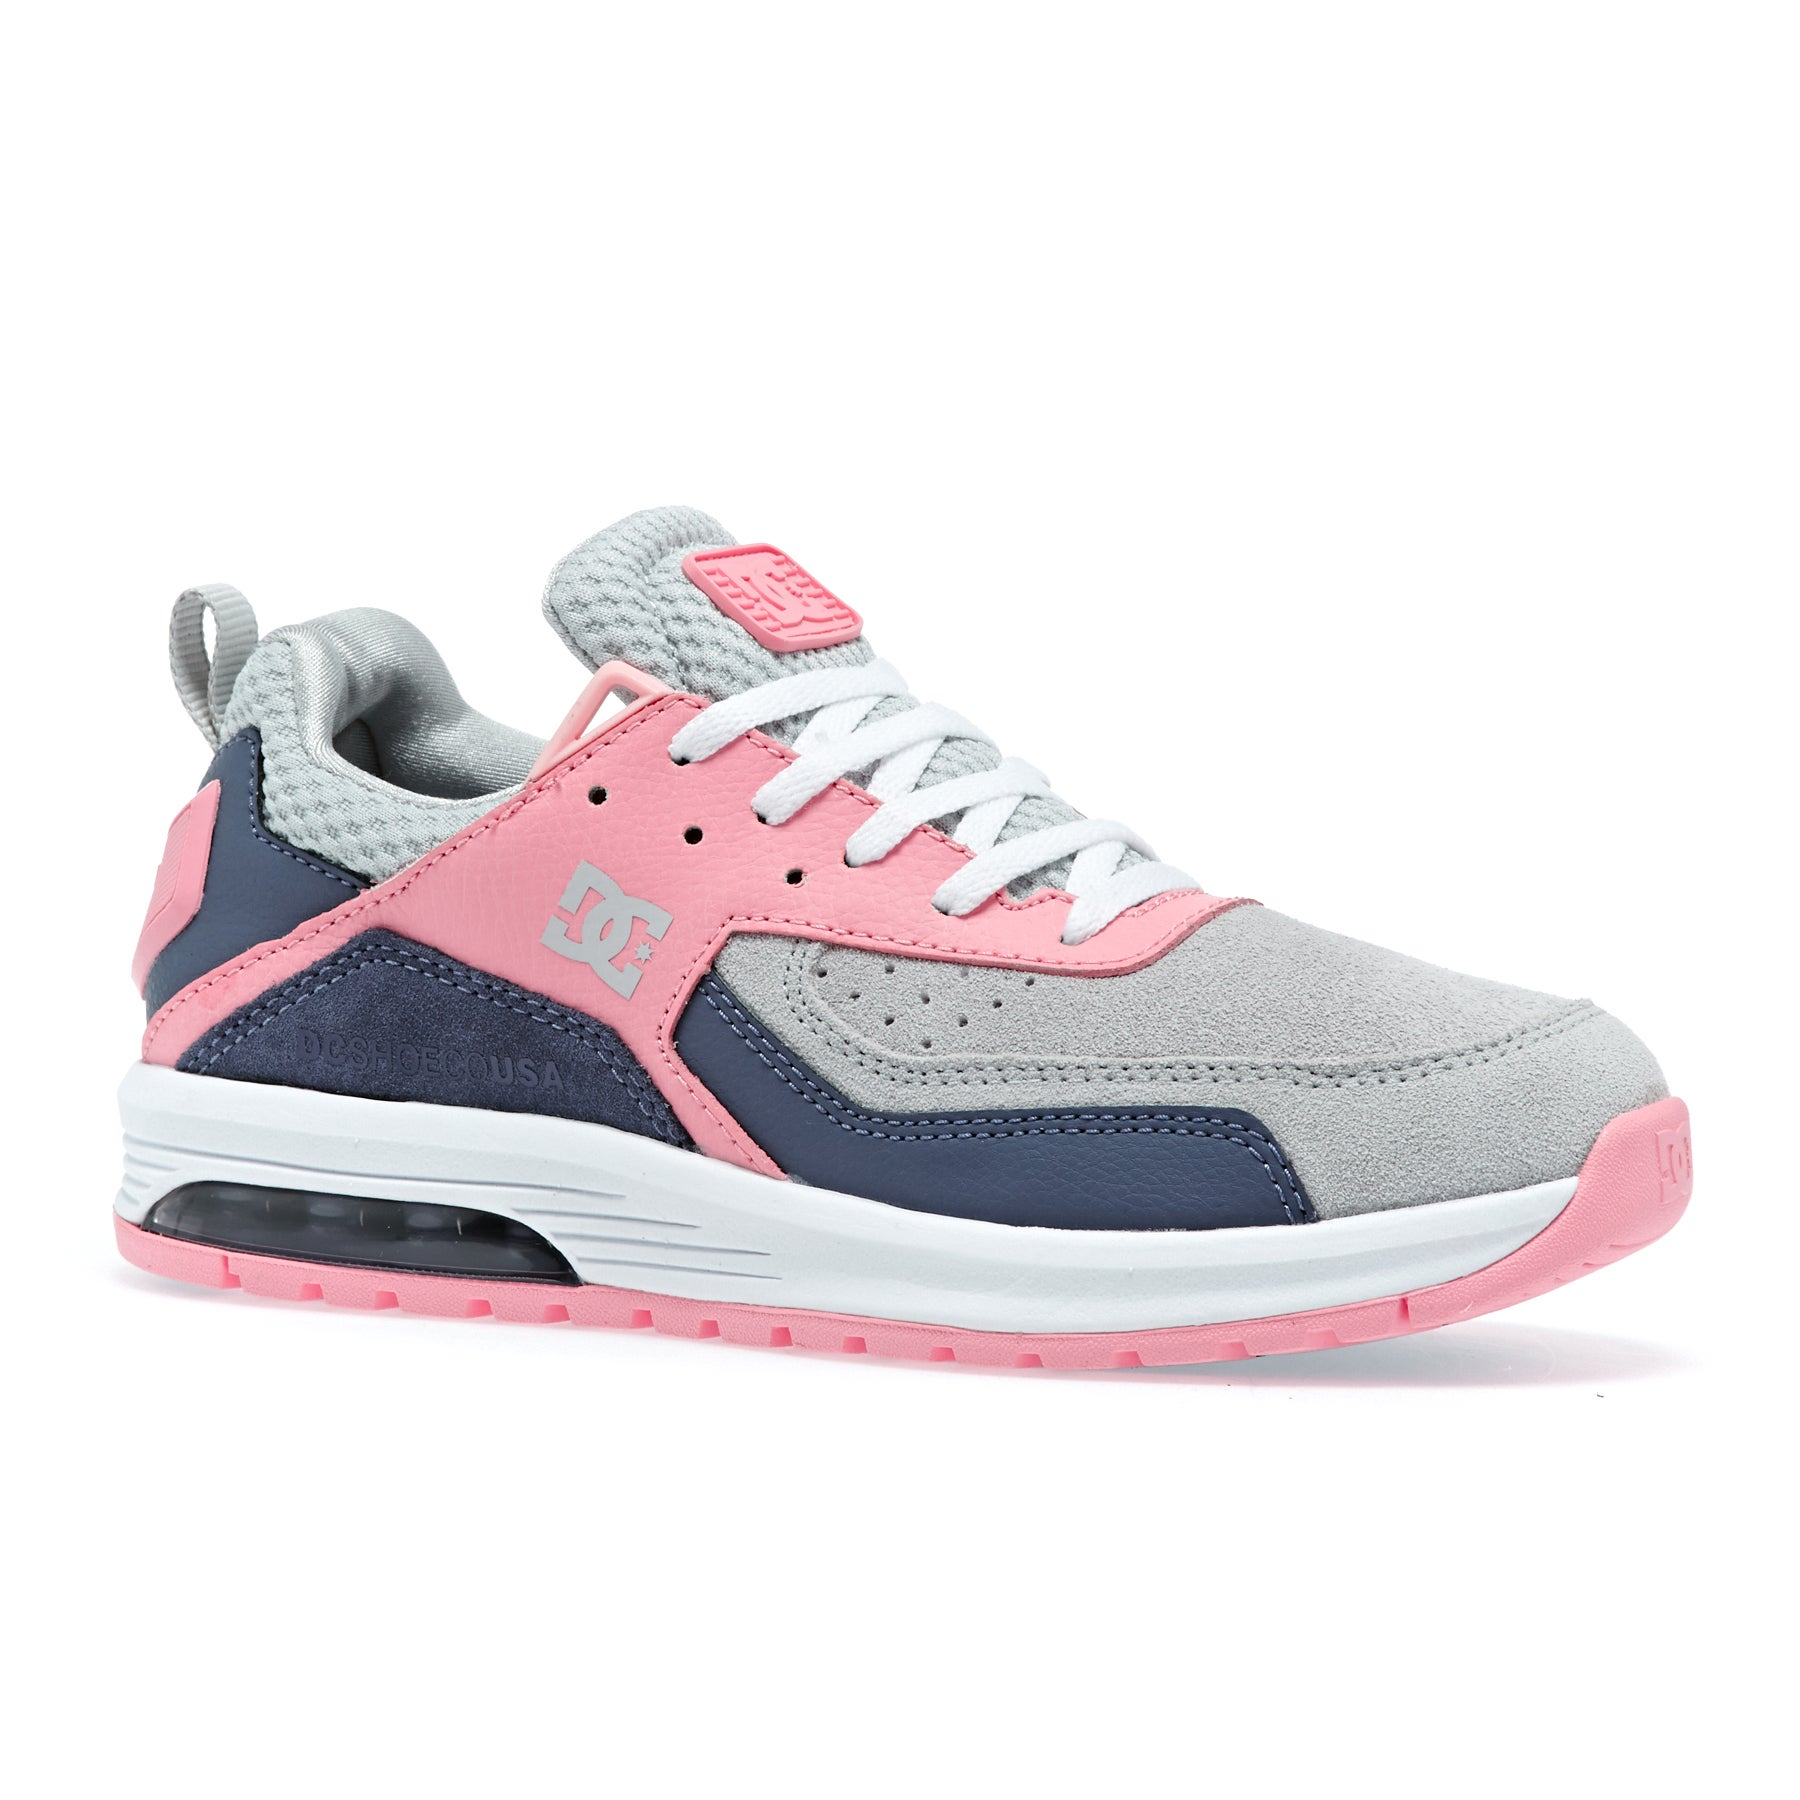 DC Vandium Se J Shoe Gp2 Womens Shoes - Grey Pink